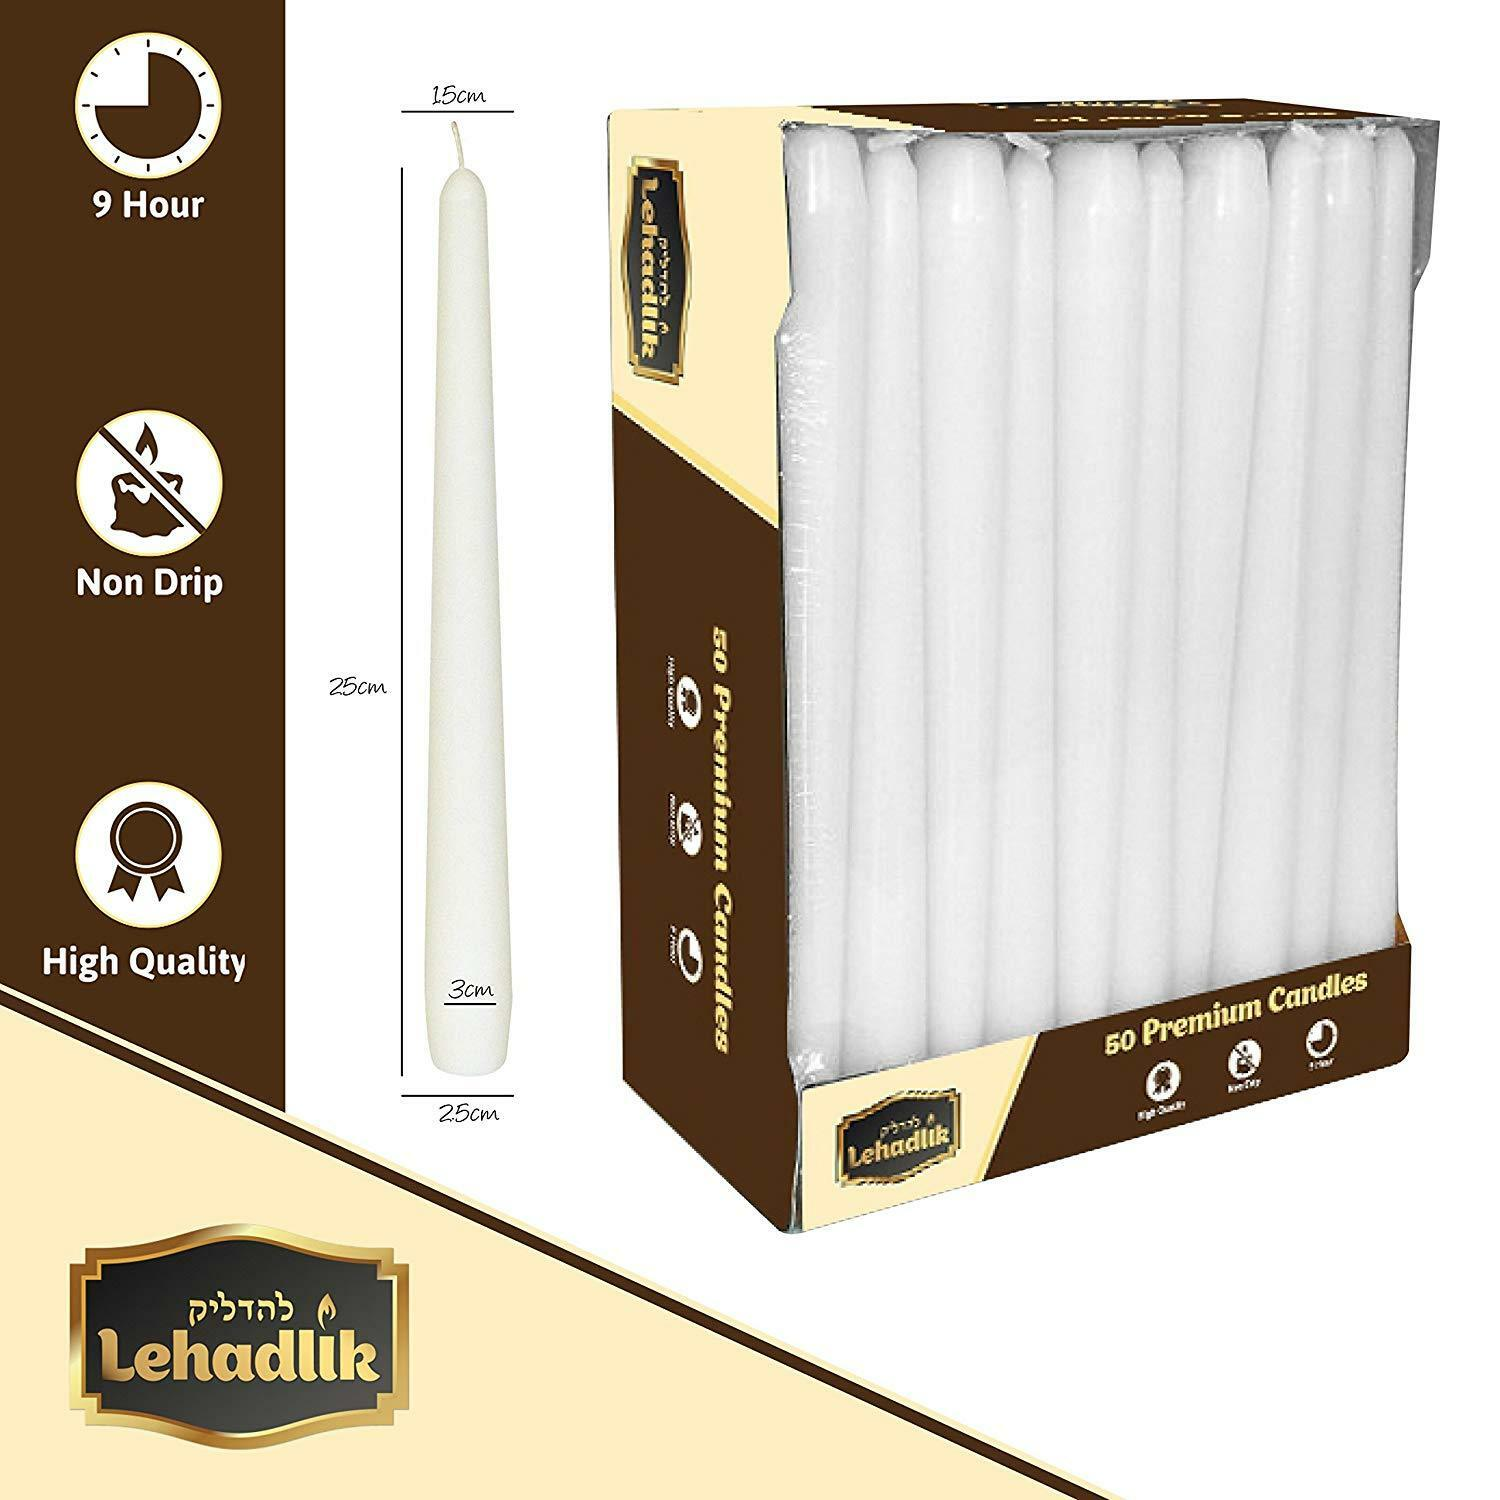 200 x 25cm Weiß Bistro Taperot Dinner CANDLES 8-9hr Burn Time. High Quality.